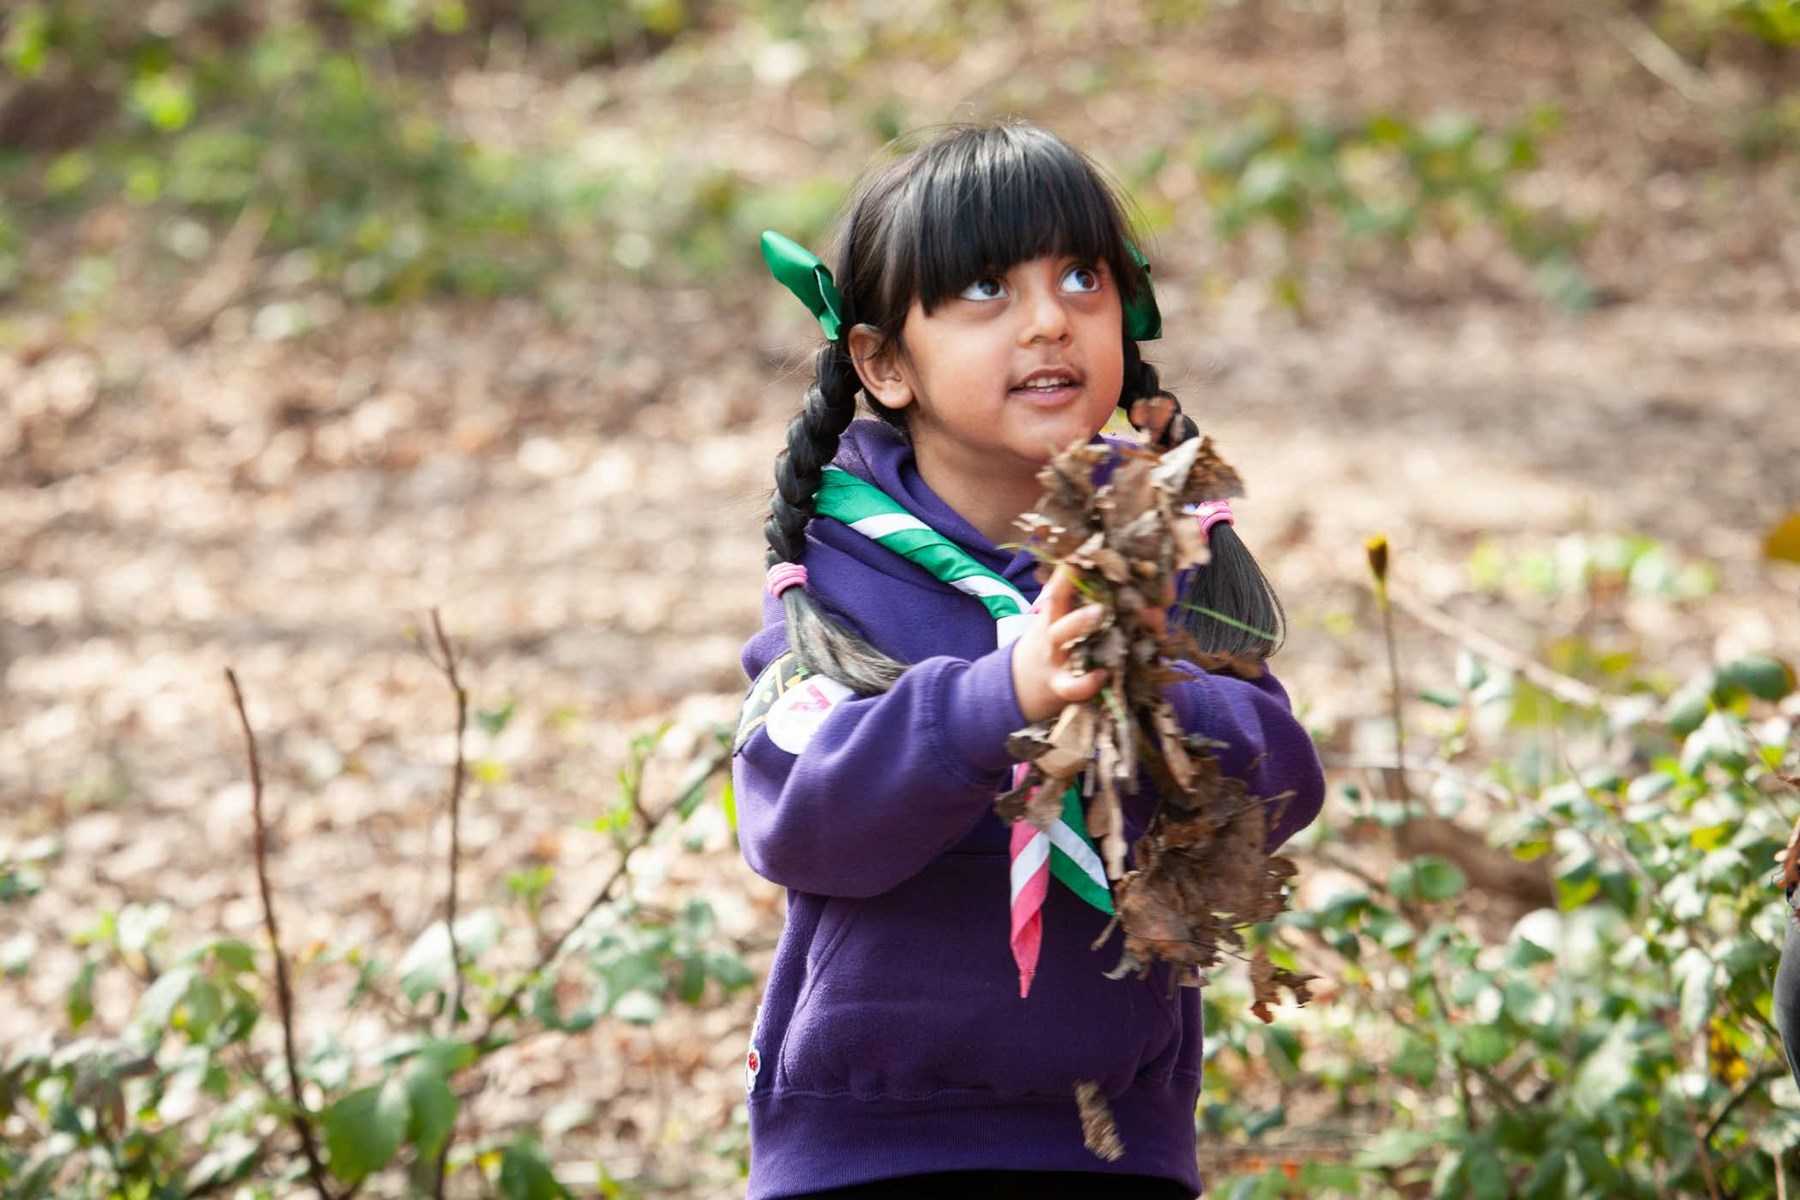 Young scout gathering leaves, as part of the Early Years pilot.